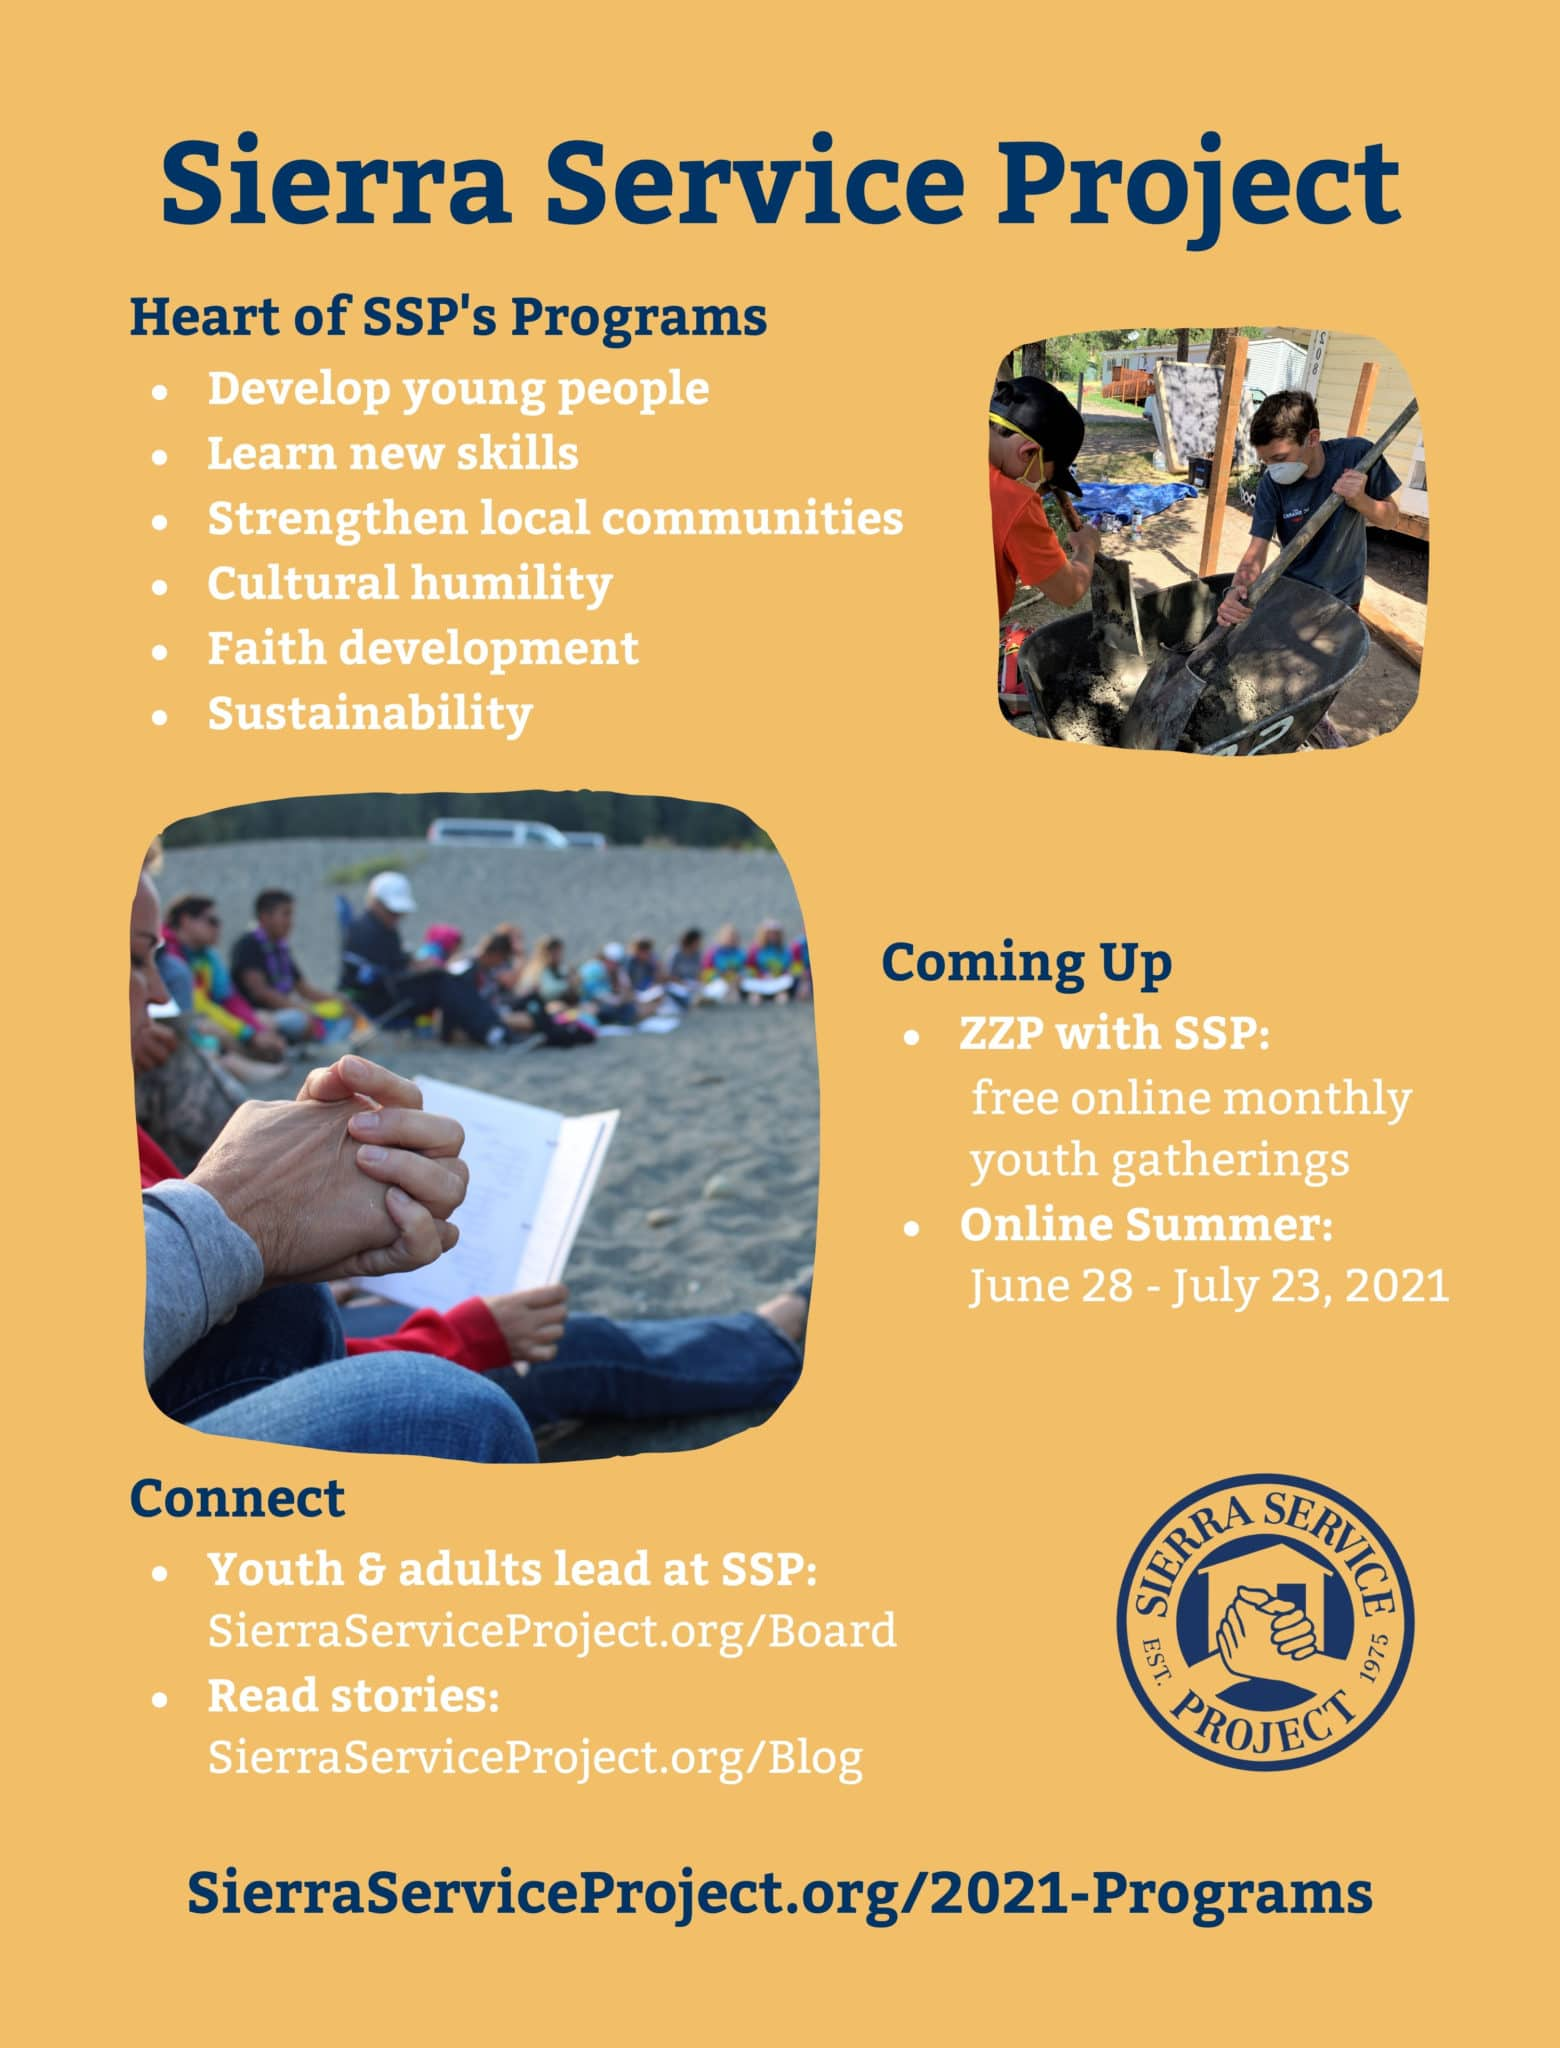 Graphic depicting the heart of SSP's programs, upcoming opportunities, and ways to stay connected.